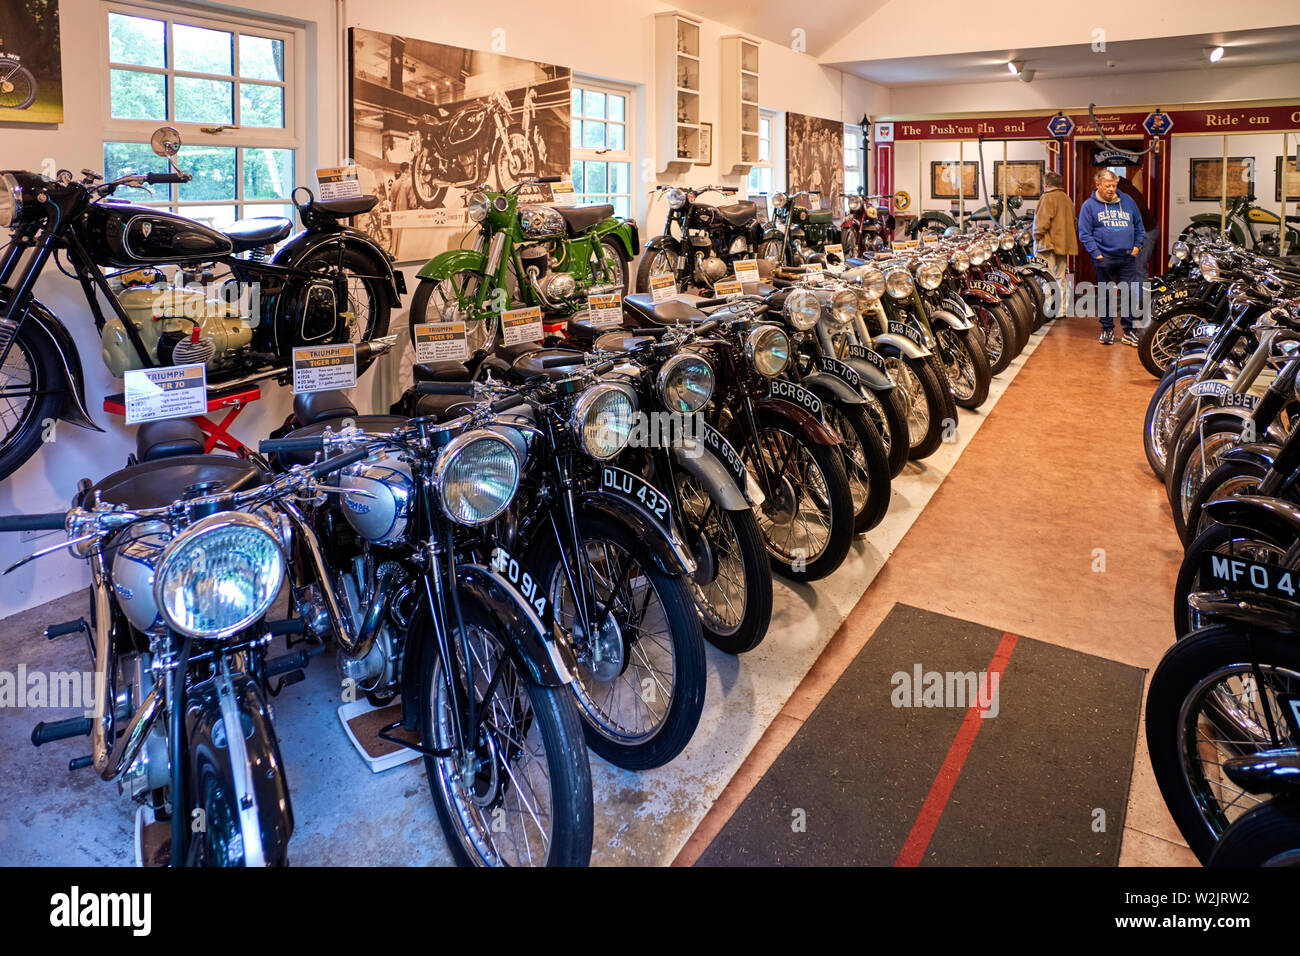 Motorcycle Museum Stock Photos & Motorcycle Museum Stock